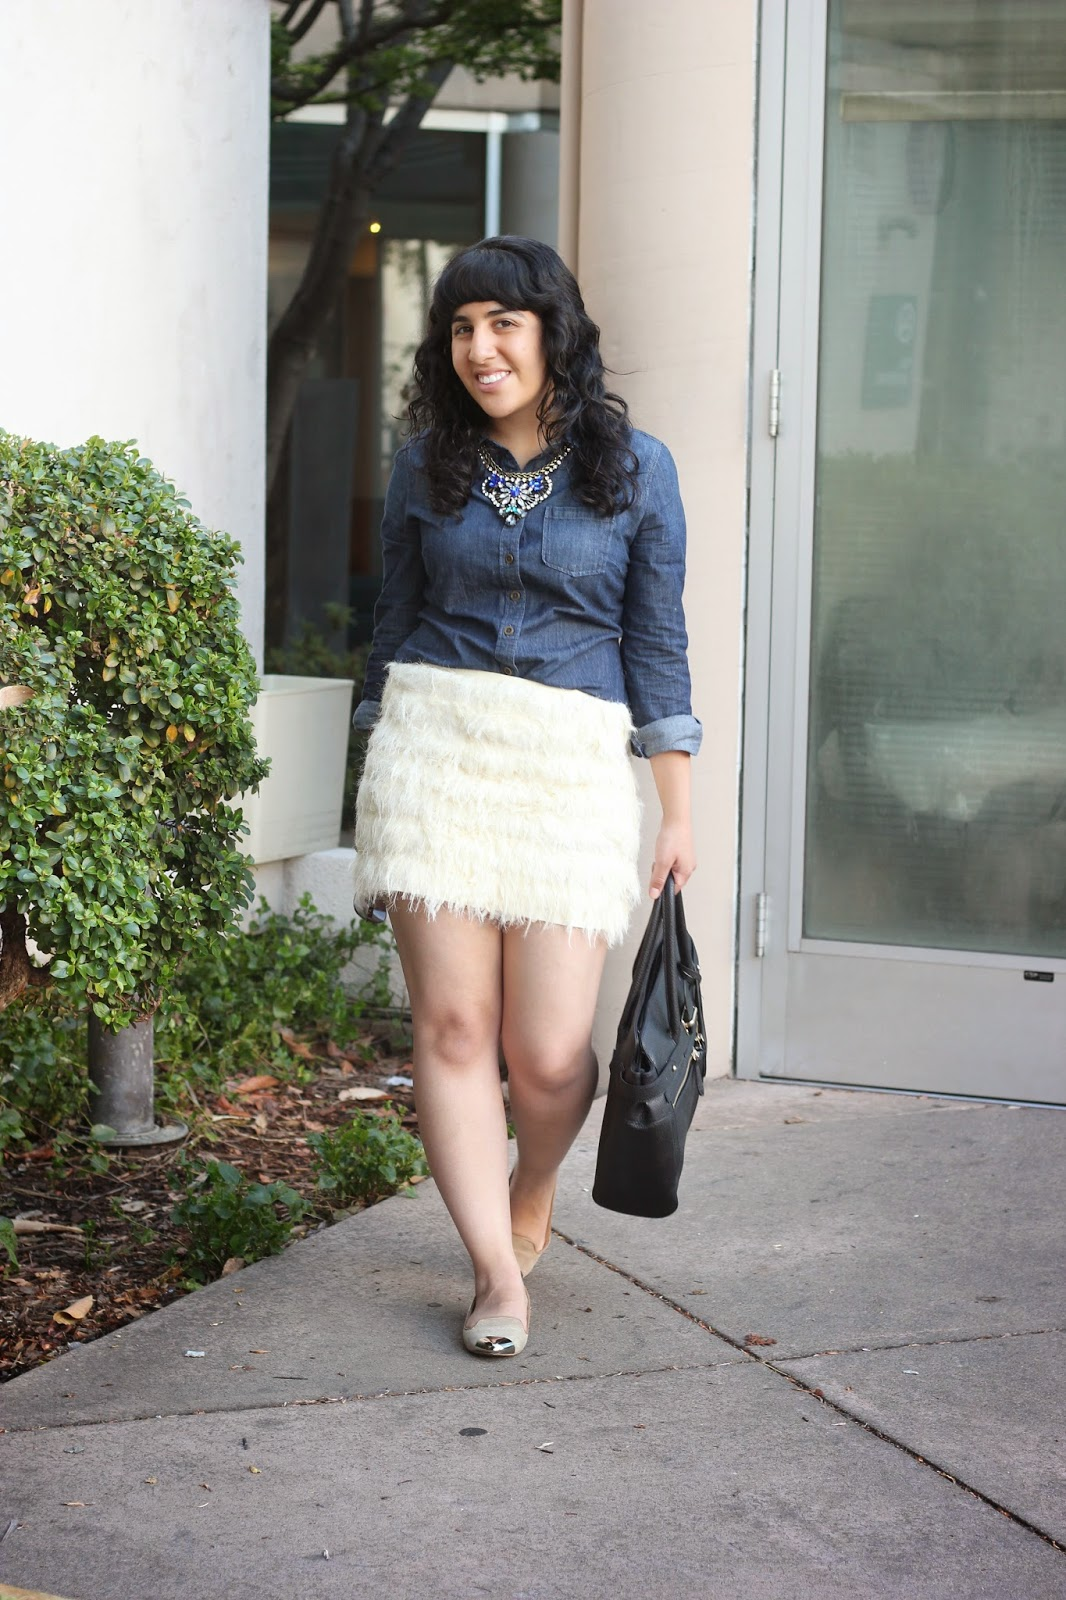 DVF Skirt and Denim Top